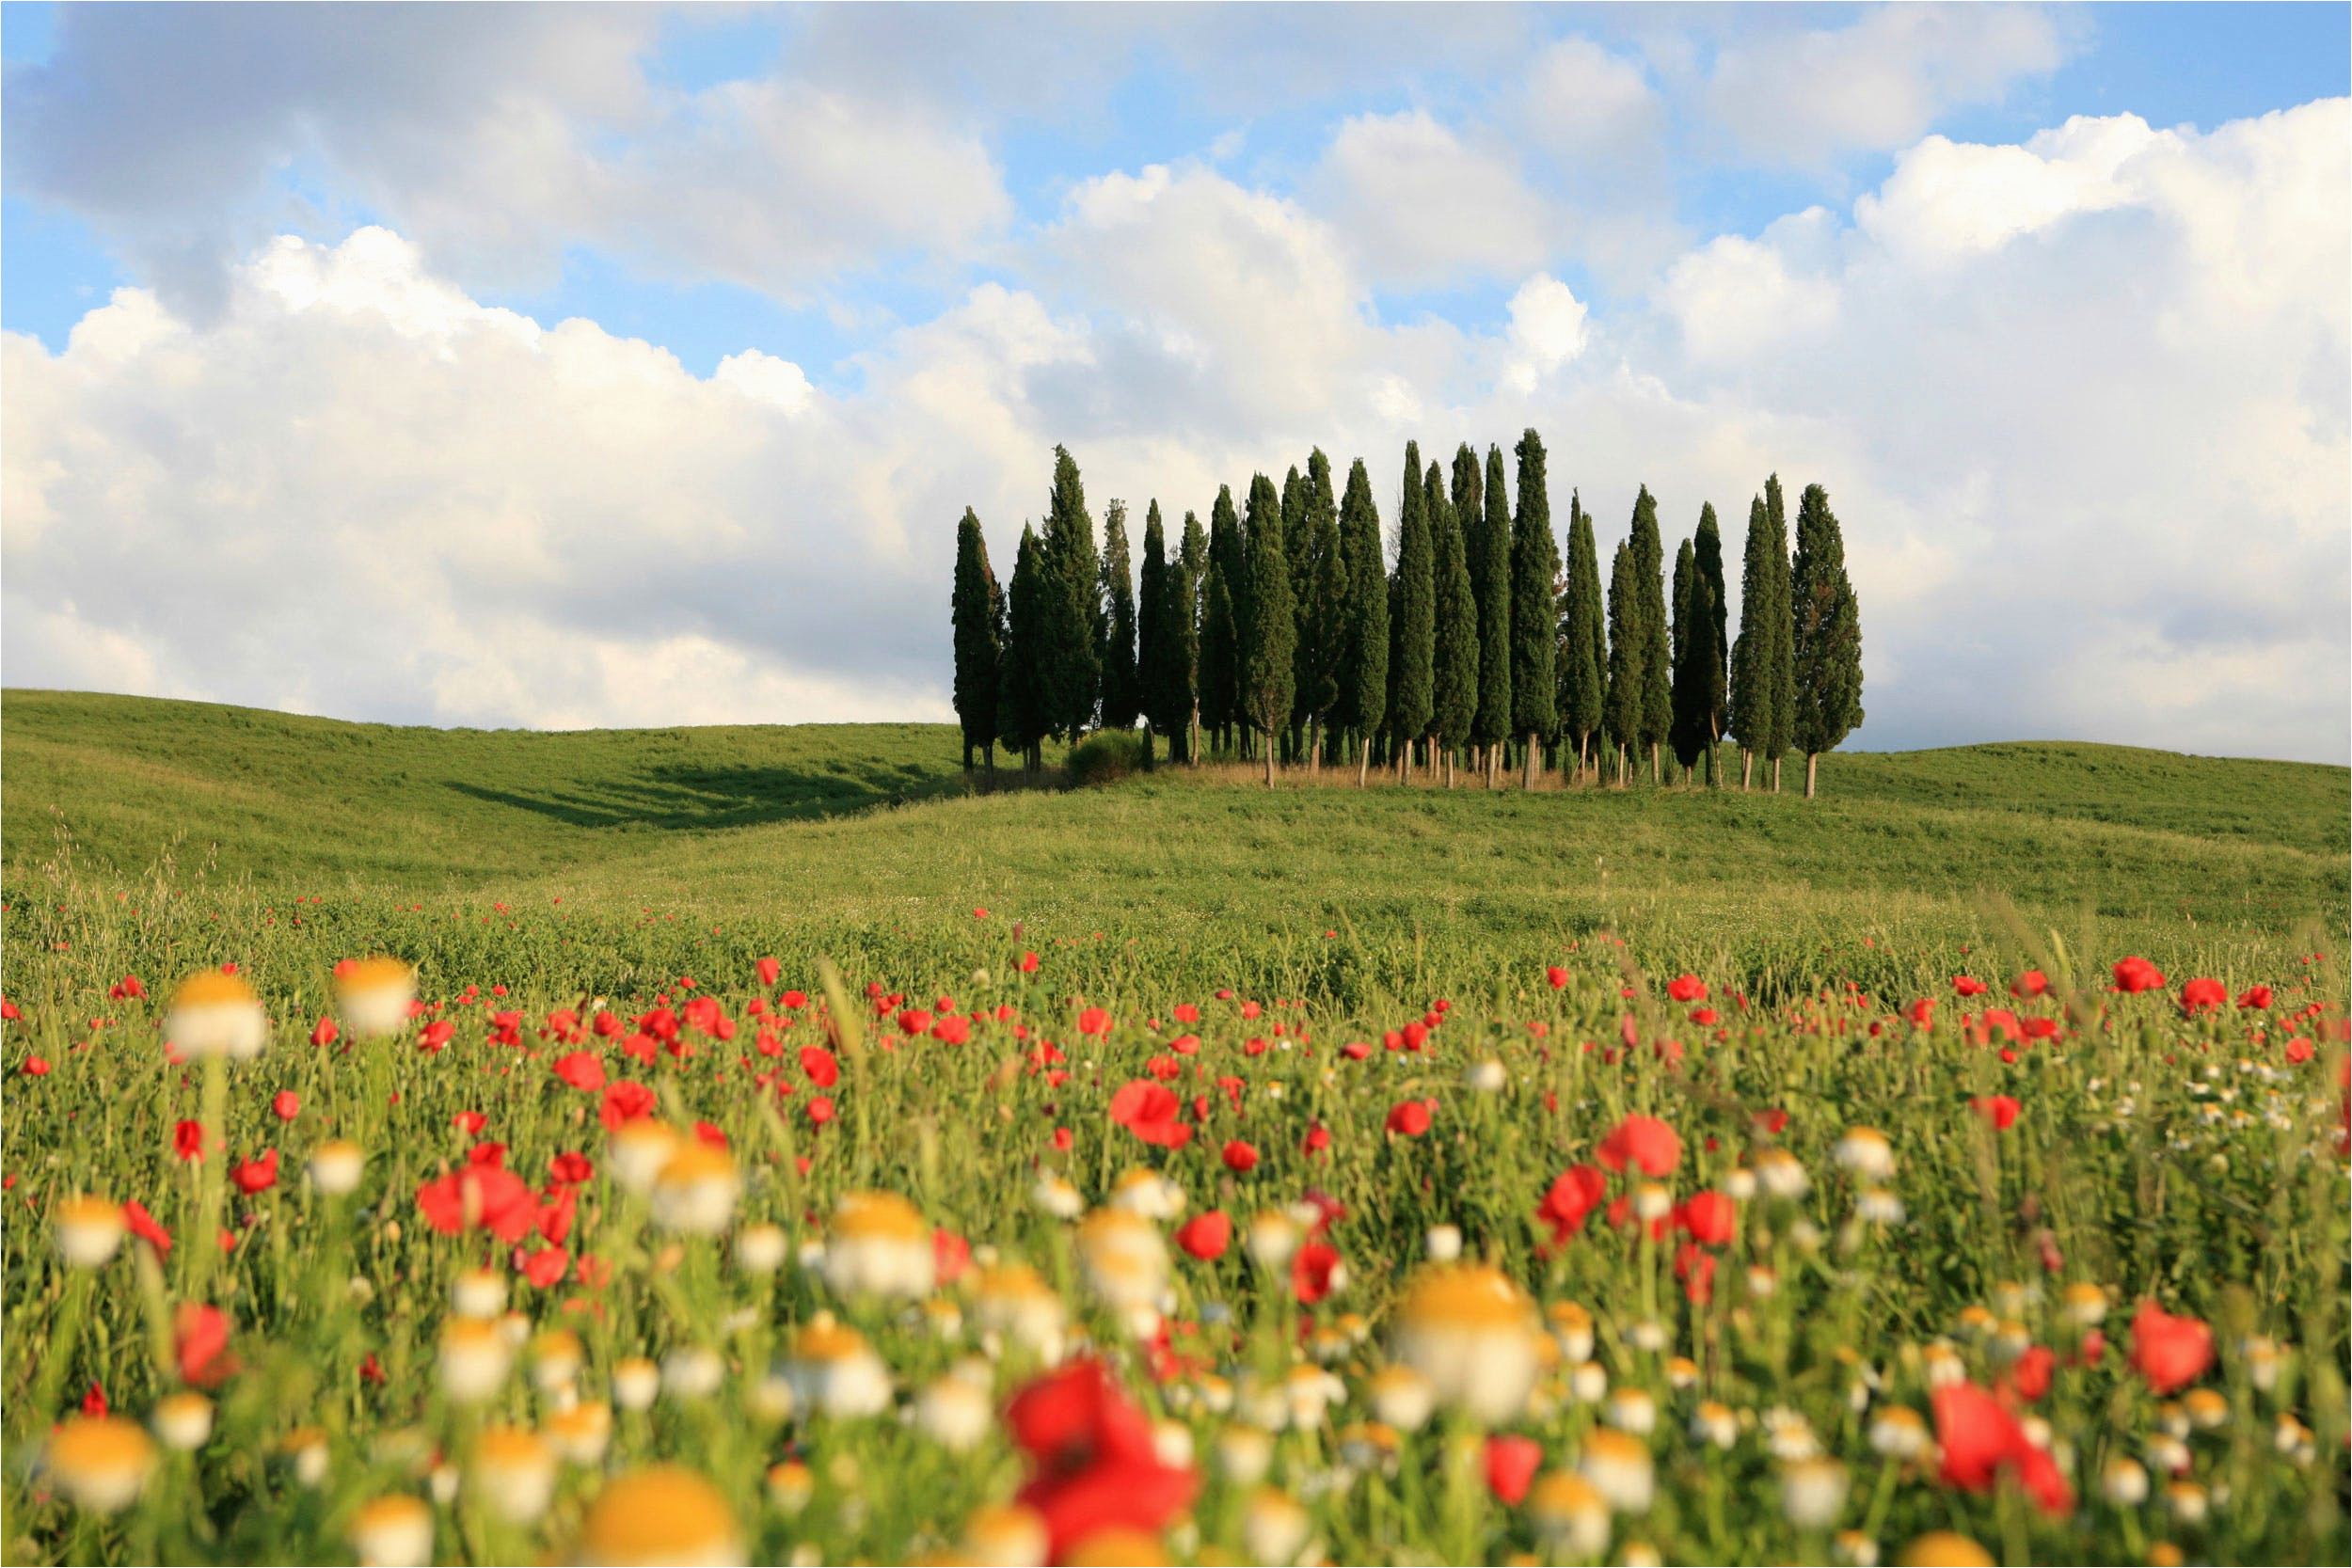 24 hours in val d orcia itinerary on what to see and do in a day in